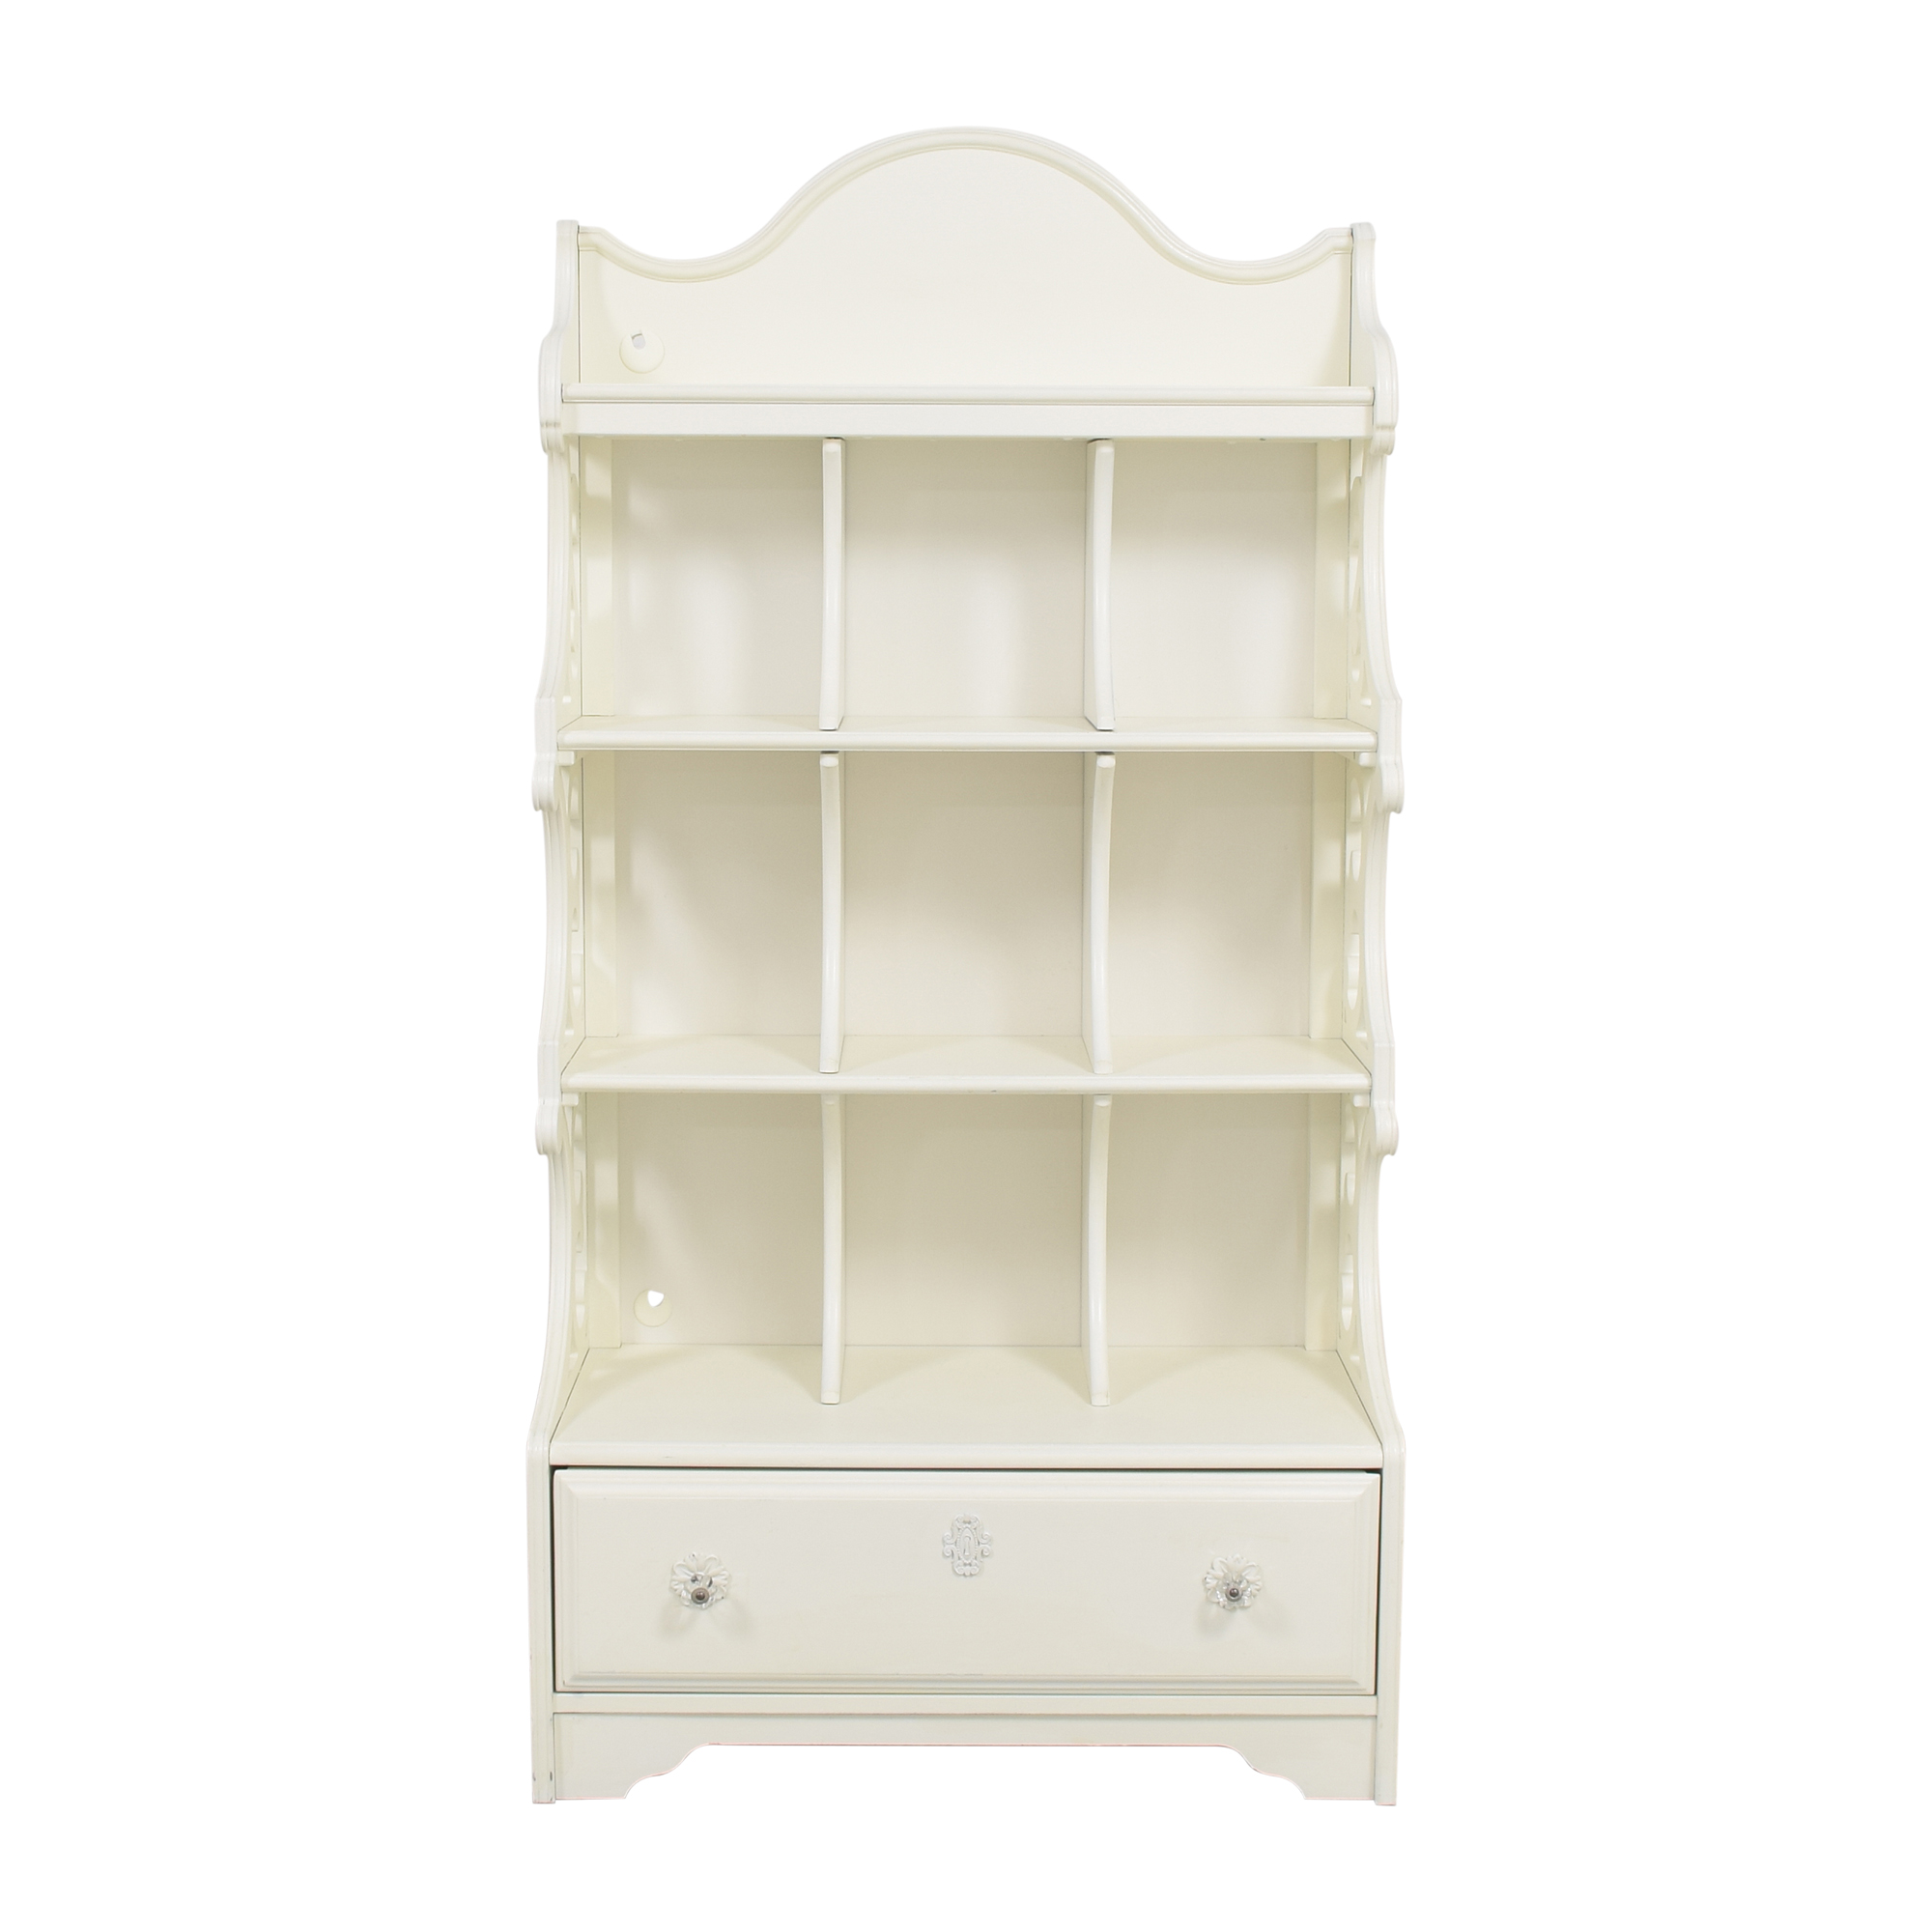 Universal Furniture Universal Furniture Smartstuff Bellamy Bookcase Nook nyc